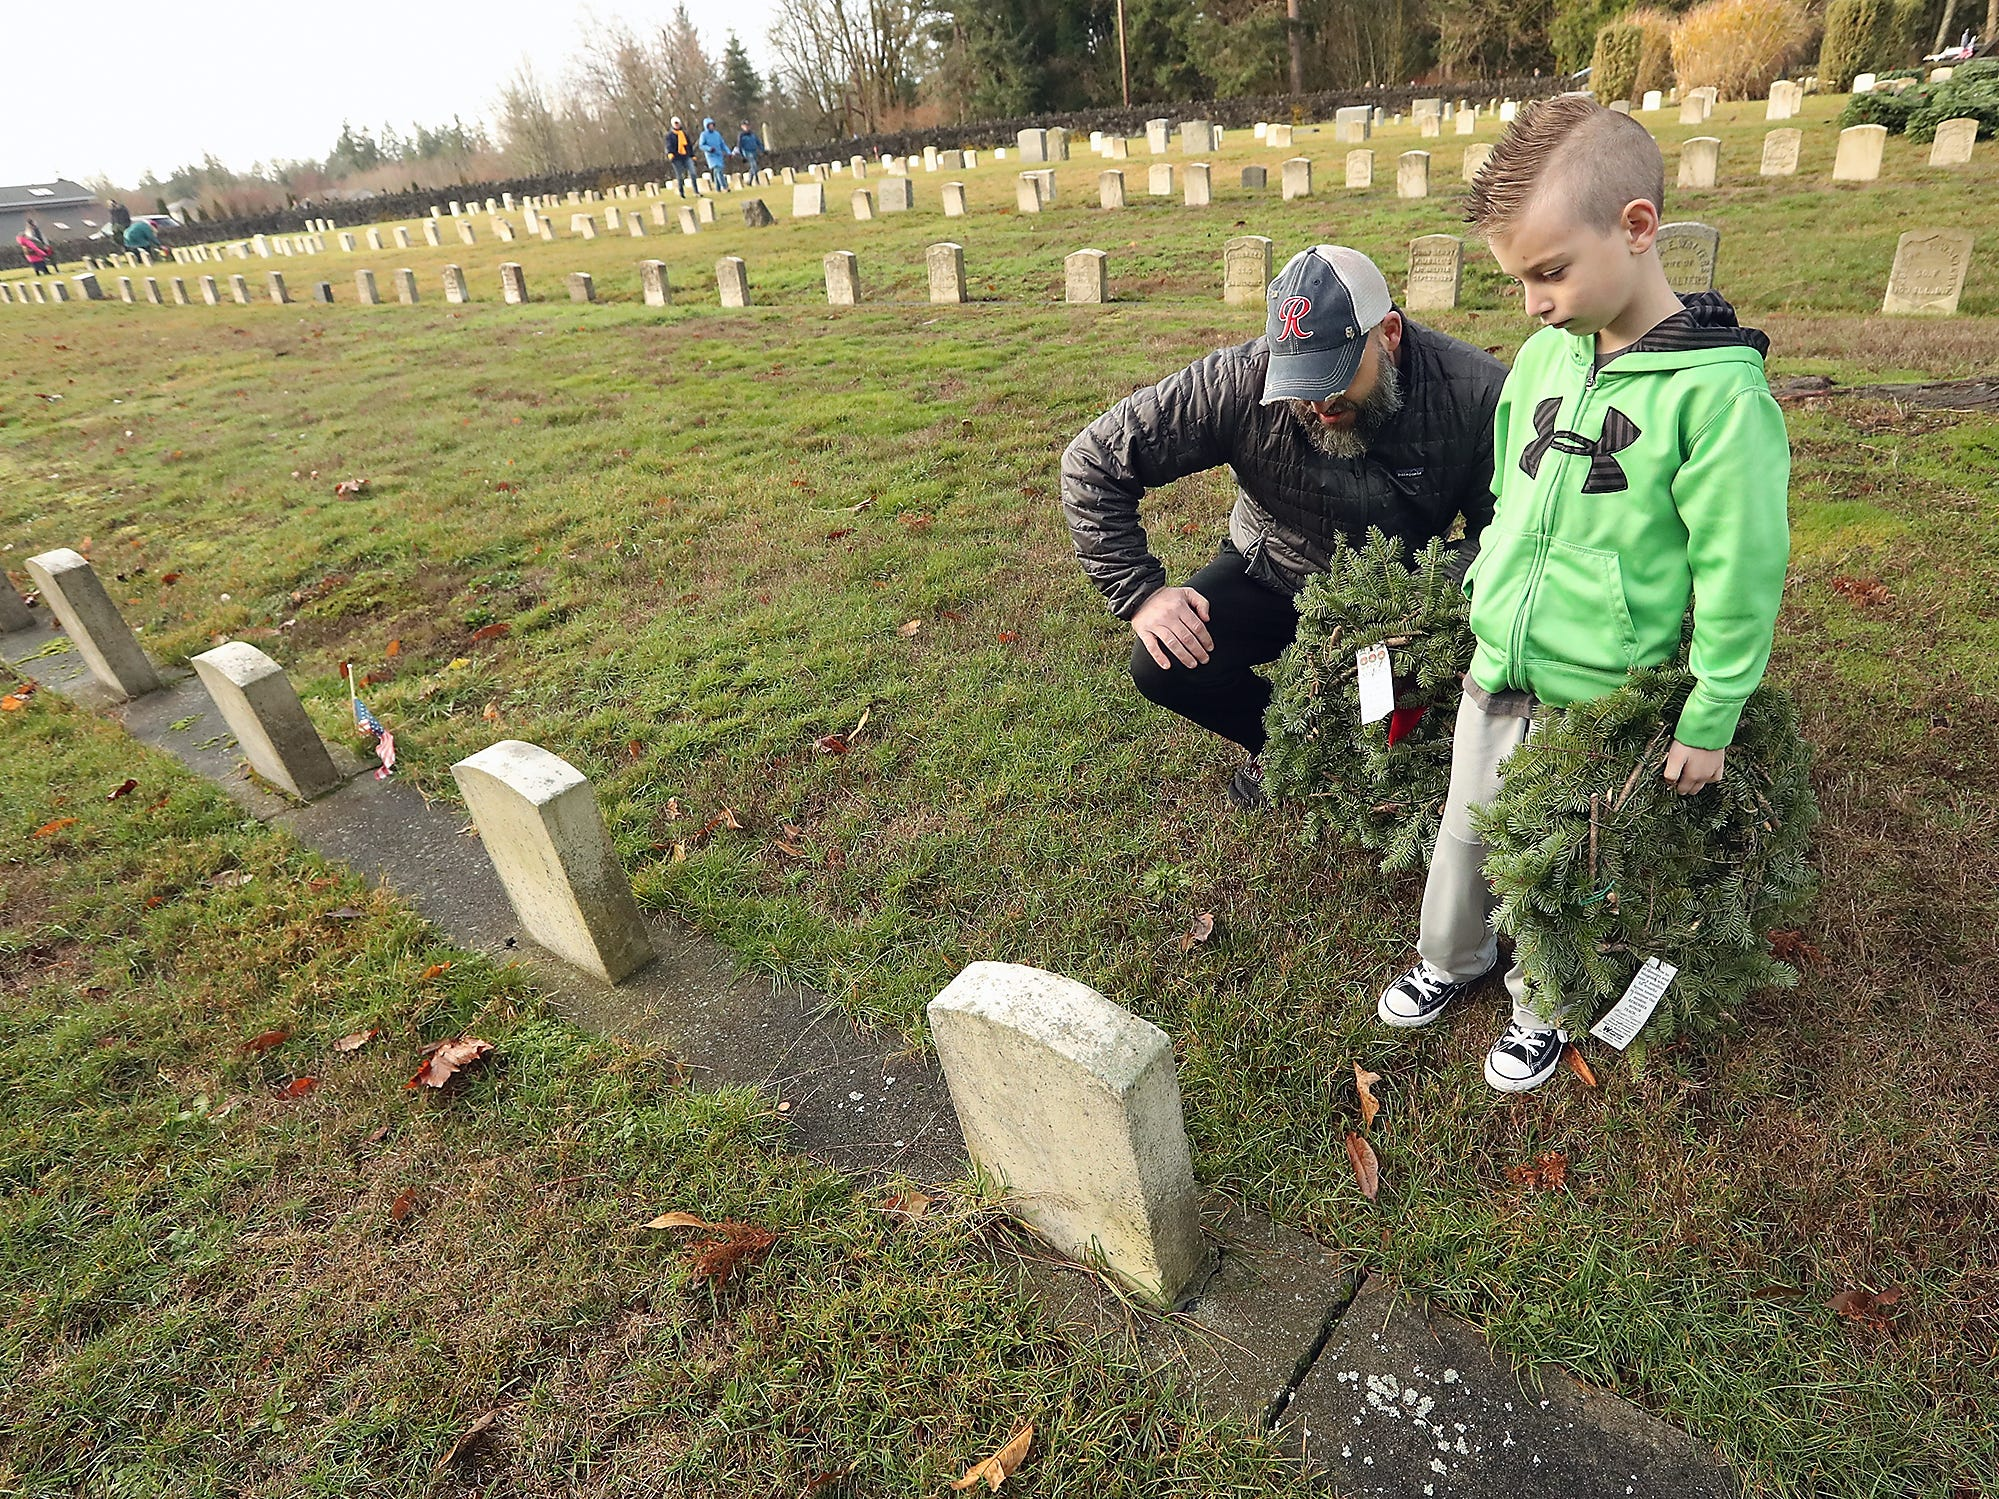 Mark Haase and son Griffin, 8, read the name on the headstone before placing a wreath against it during the Wreaths Across America event at the Washington Veterans Home Cemetery in Port Orchard on Saturday, December 15, 2018.